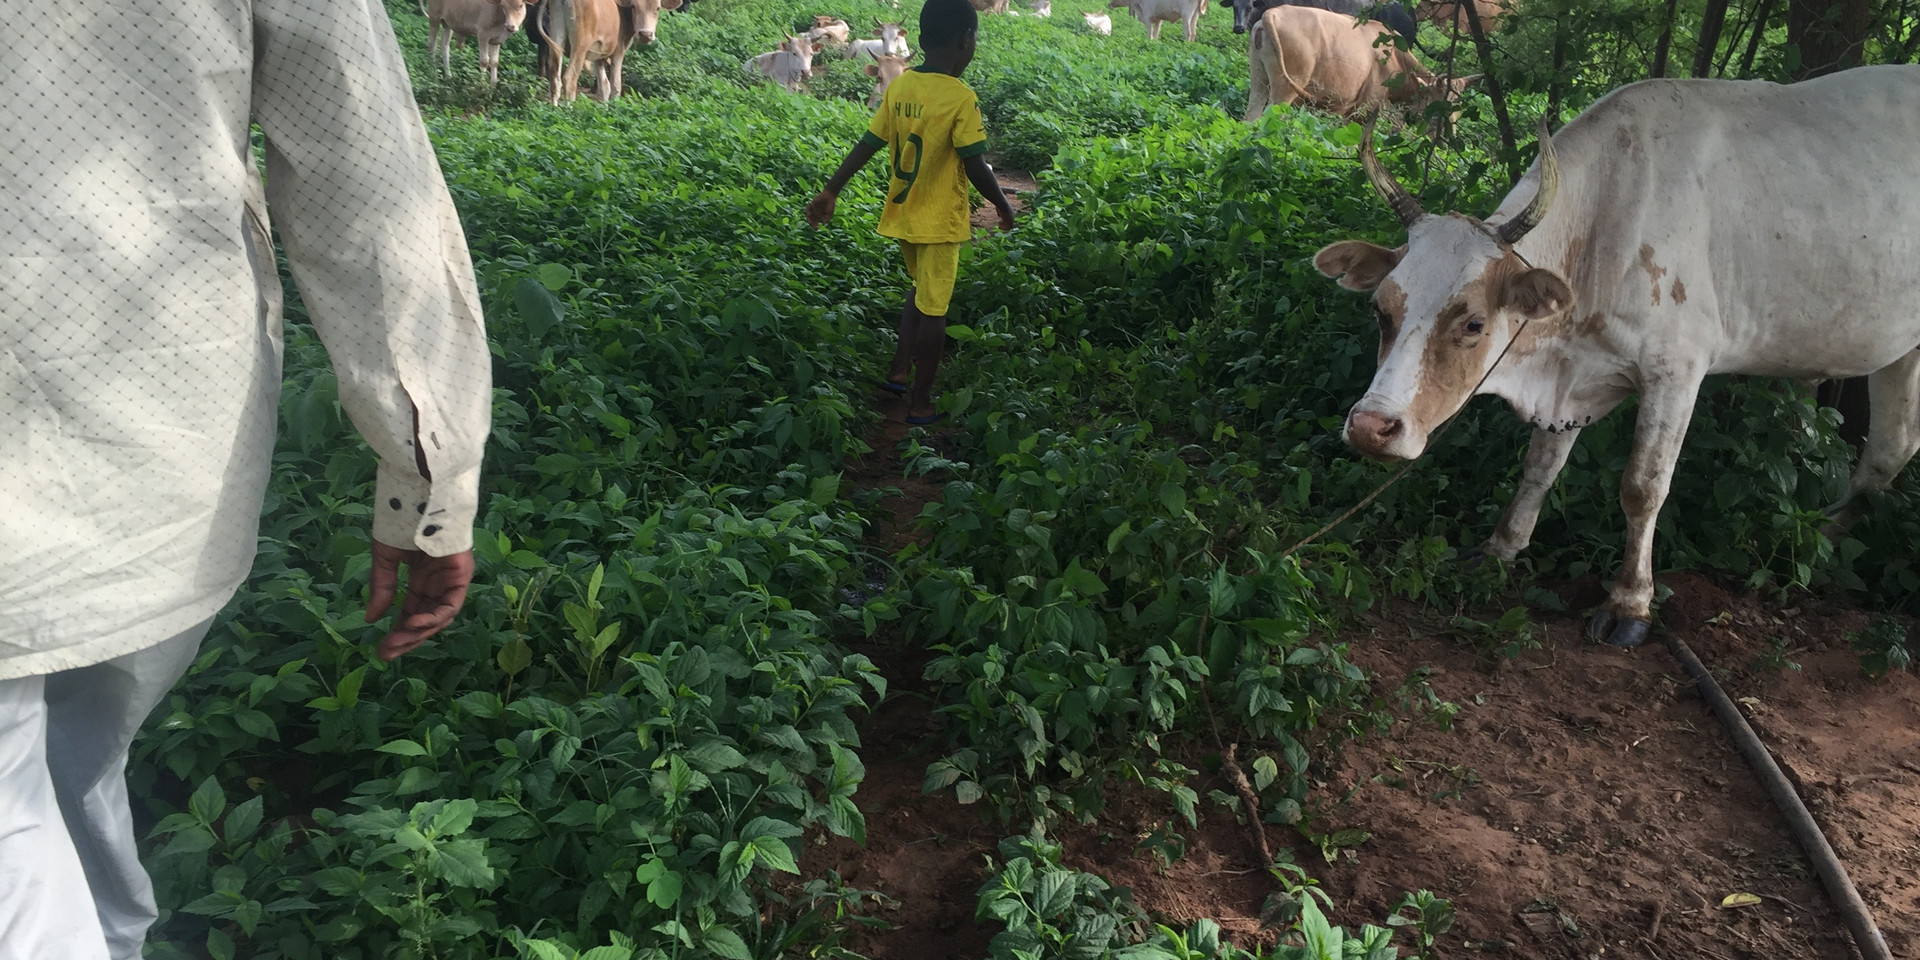 Herdsman's son playing near grazing cattle in The Gambia during the rainy season in 2016. Photo by J. Washabaugh